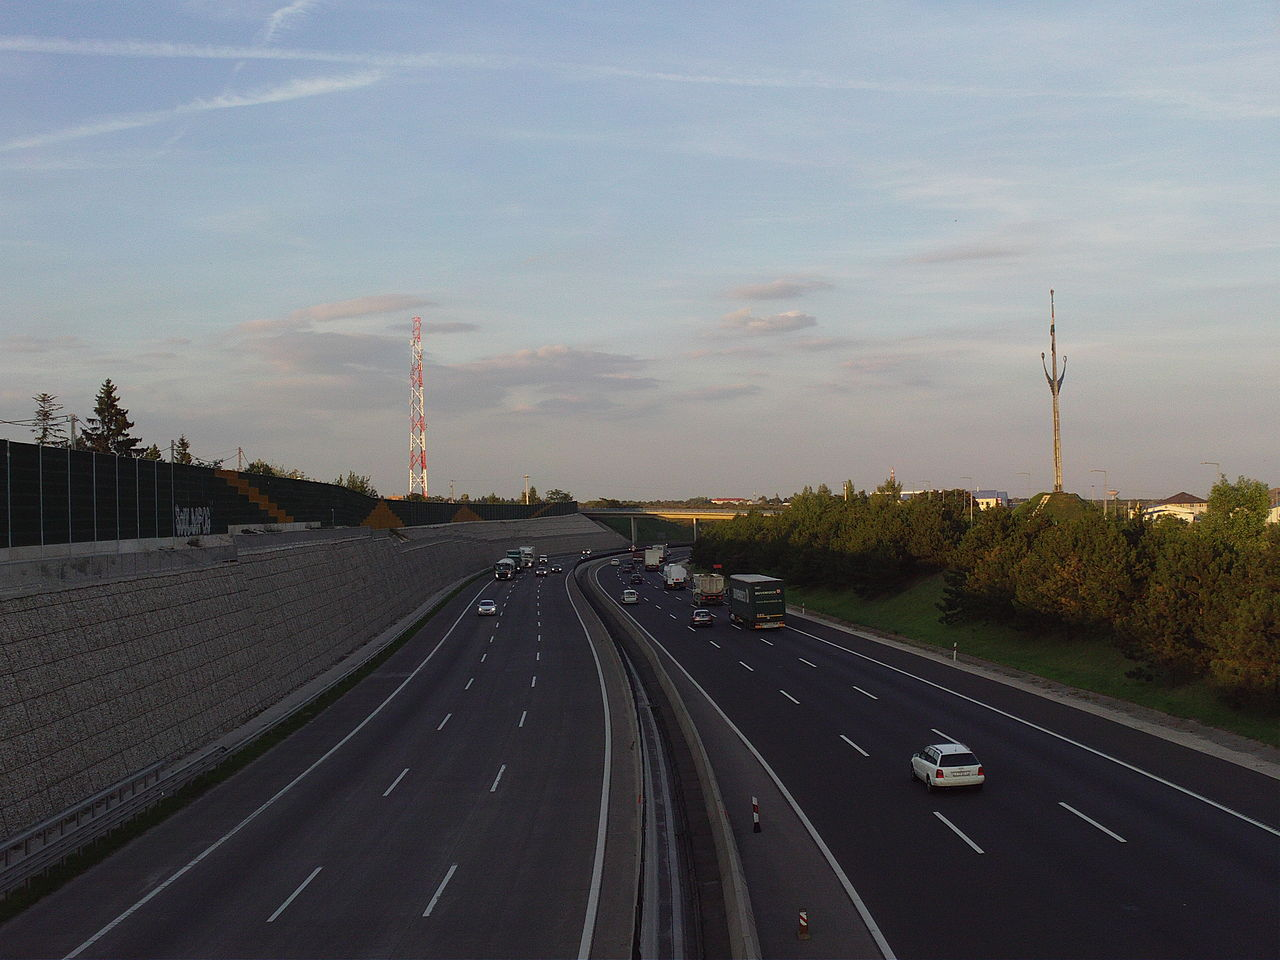 The_M0_highway_in_the_northern_part_of_Diósd_with_the_Országzászlo